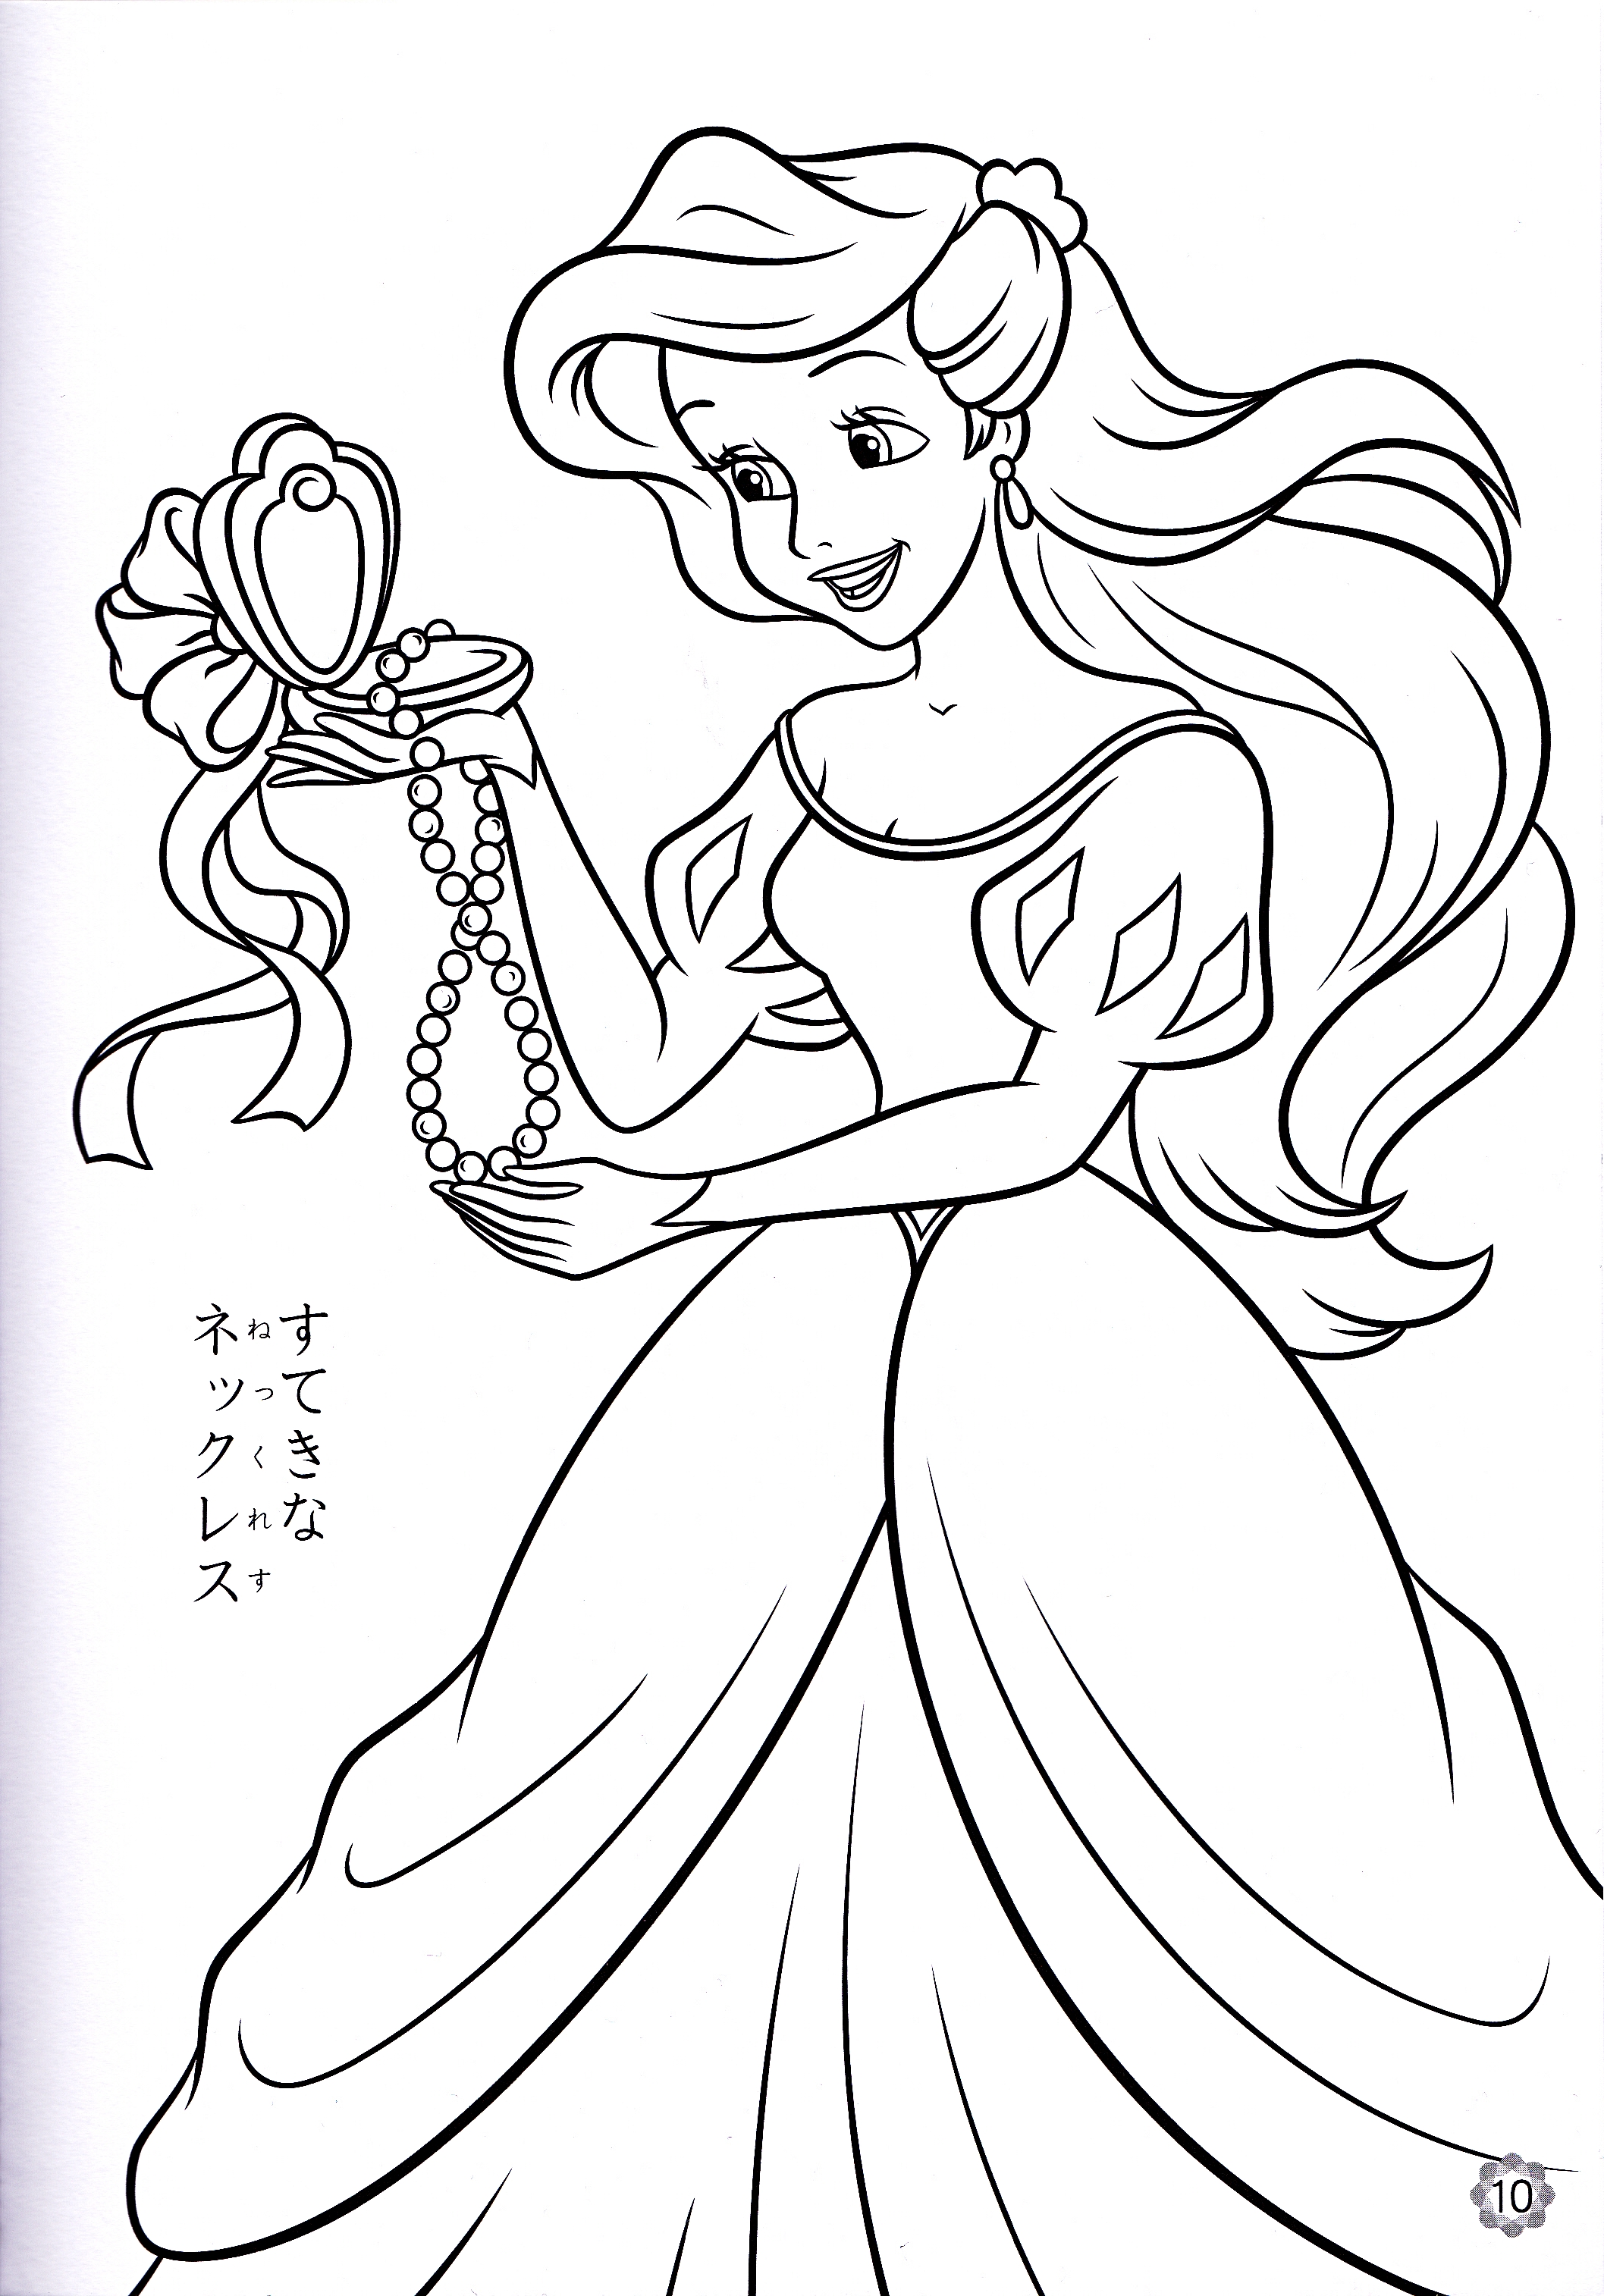 disney princess characters coloring pages - photo#3